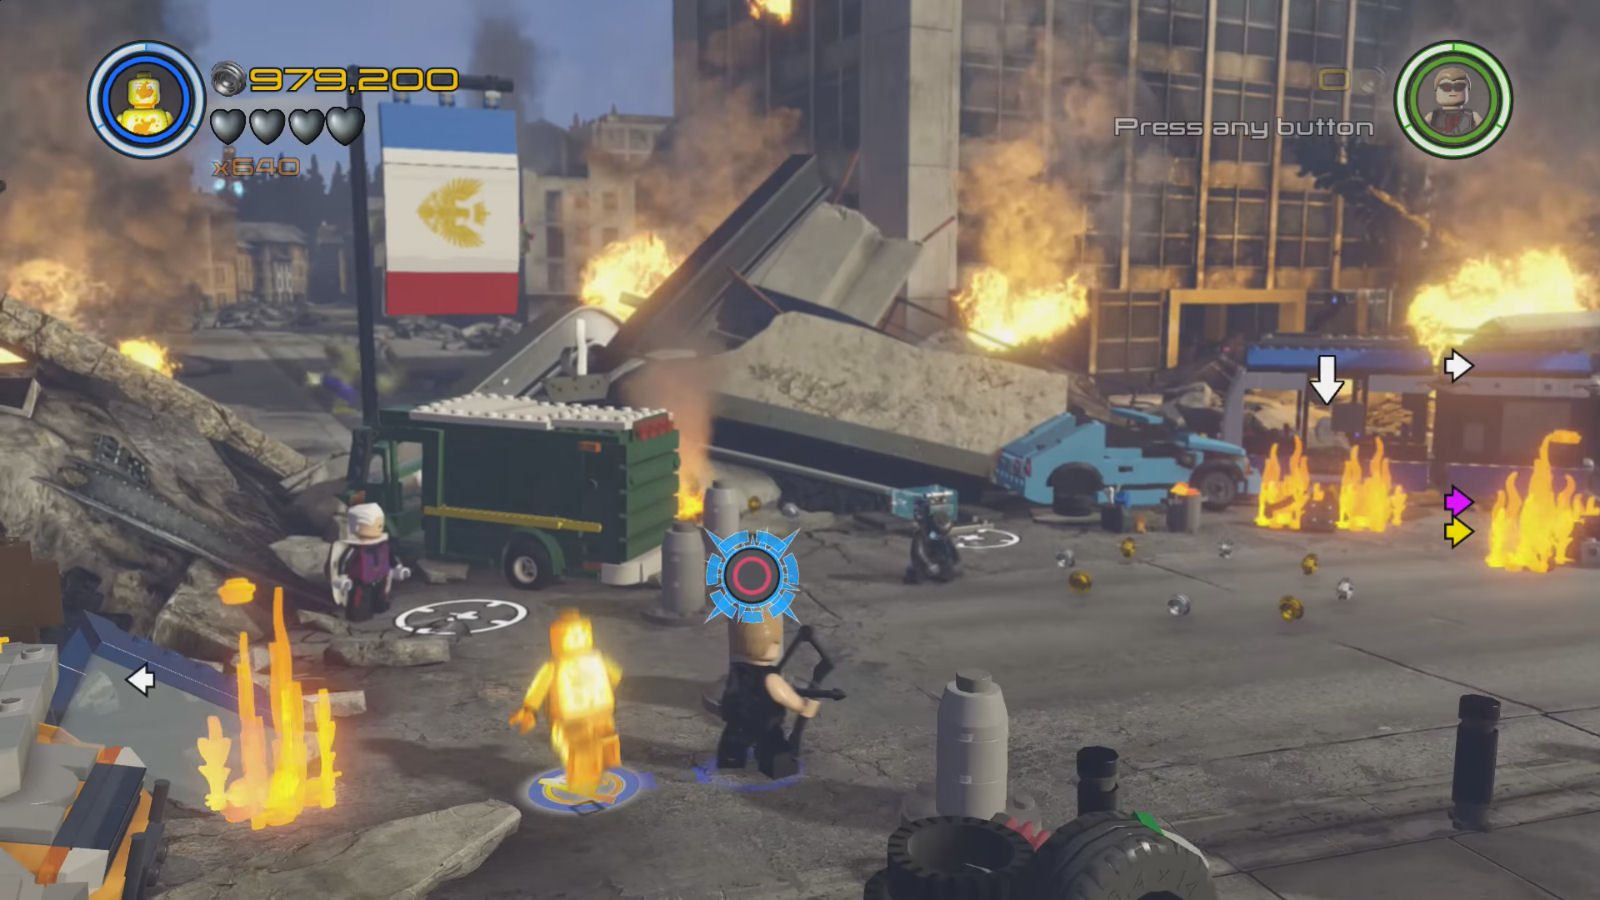 Lego Marvel's Avengers The Collector Sokovian Flag Location